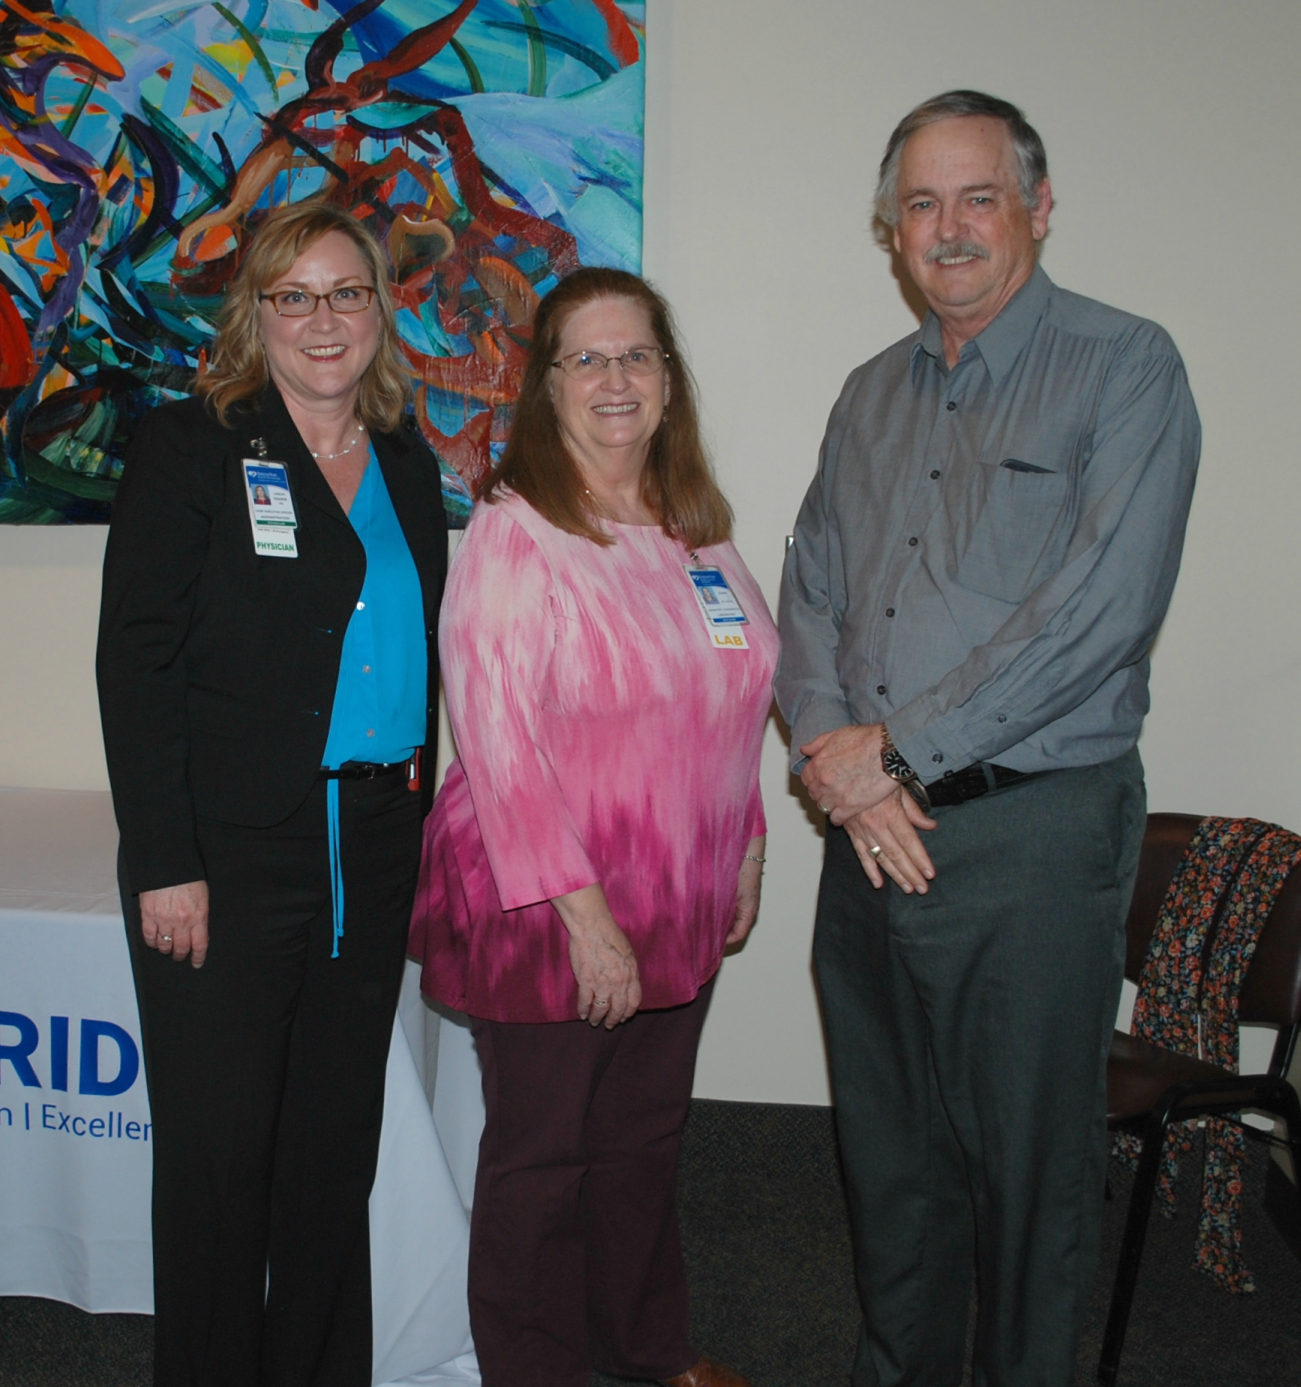 35-year employee Diane Welsh poses with CEO Dr. Lesley Ogden and her Laboratory manager, Stewart Pritchard.